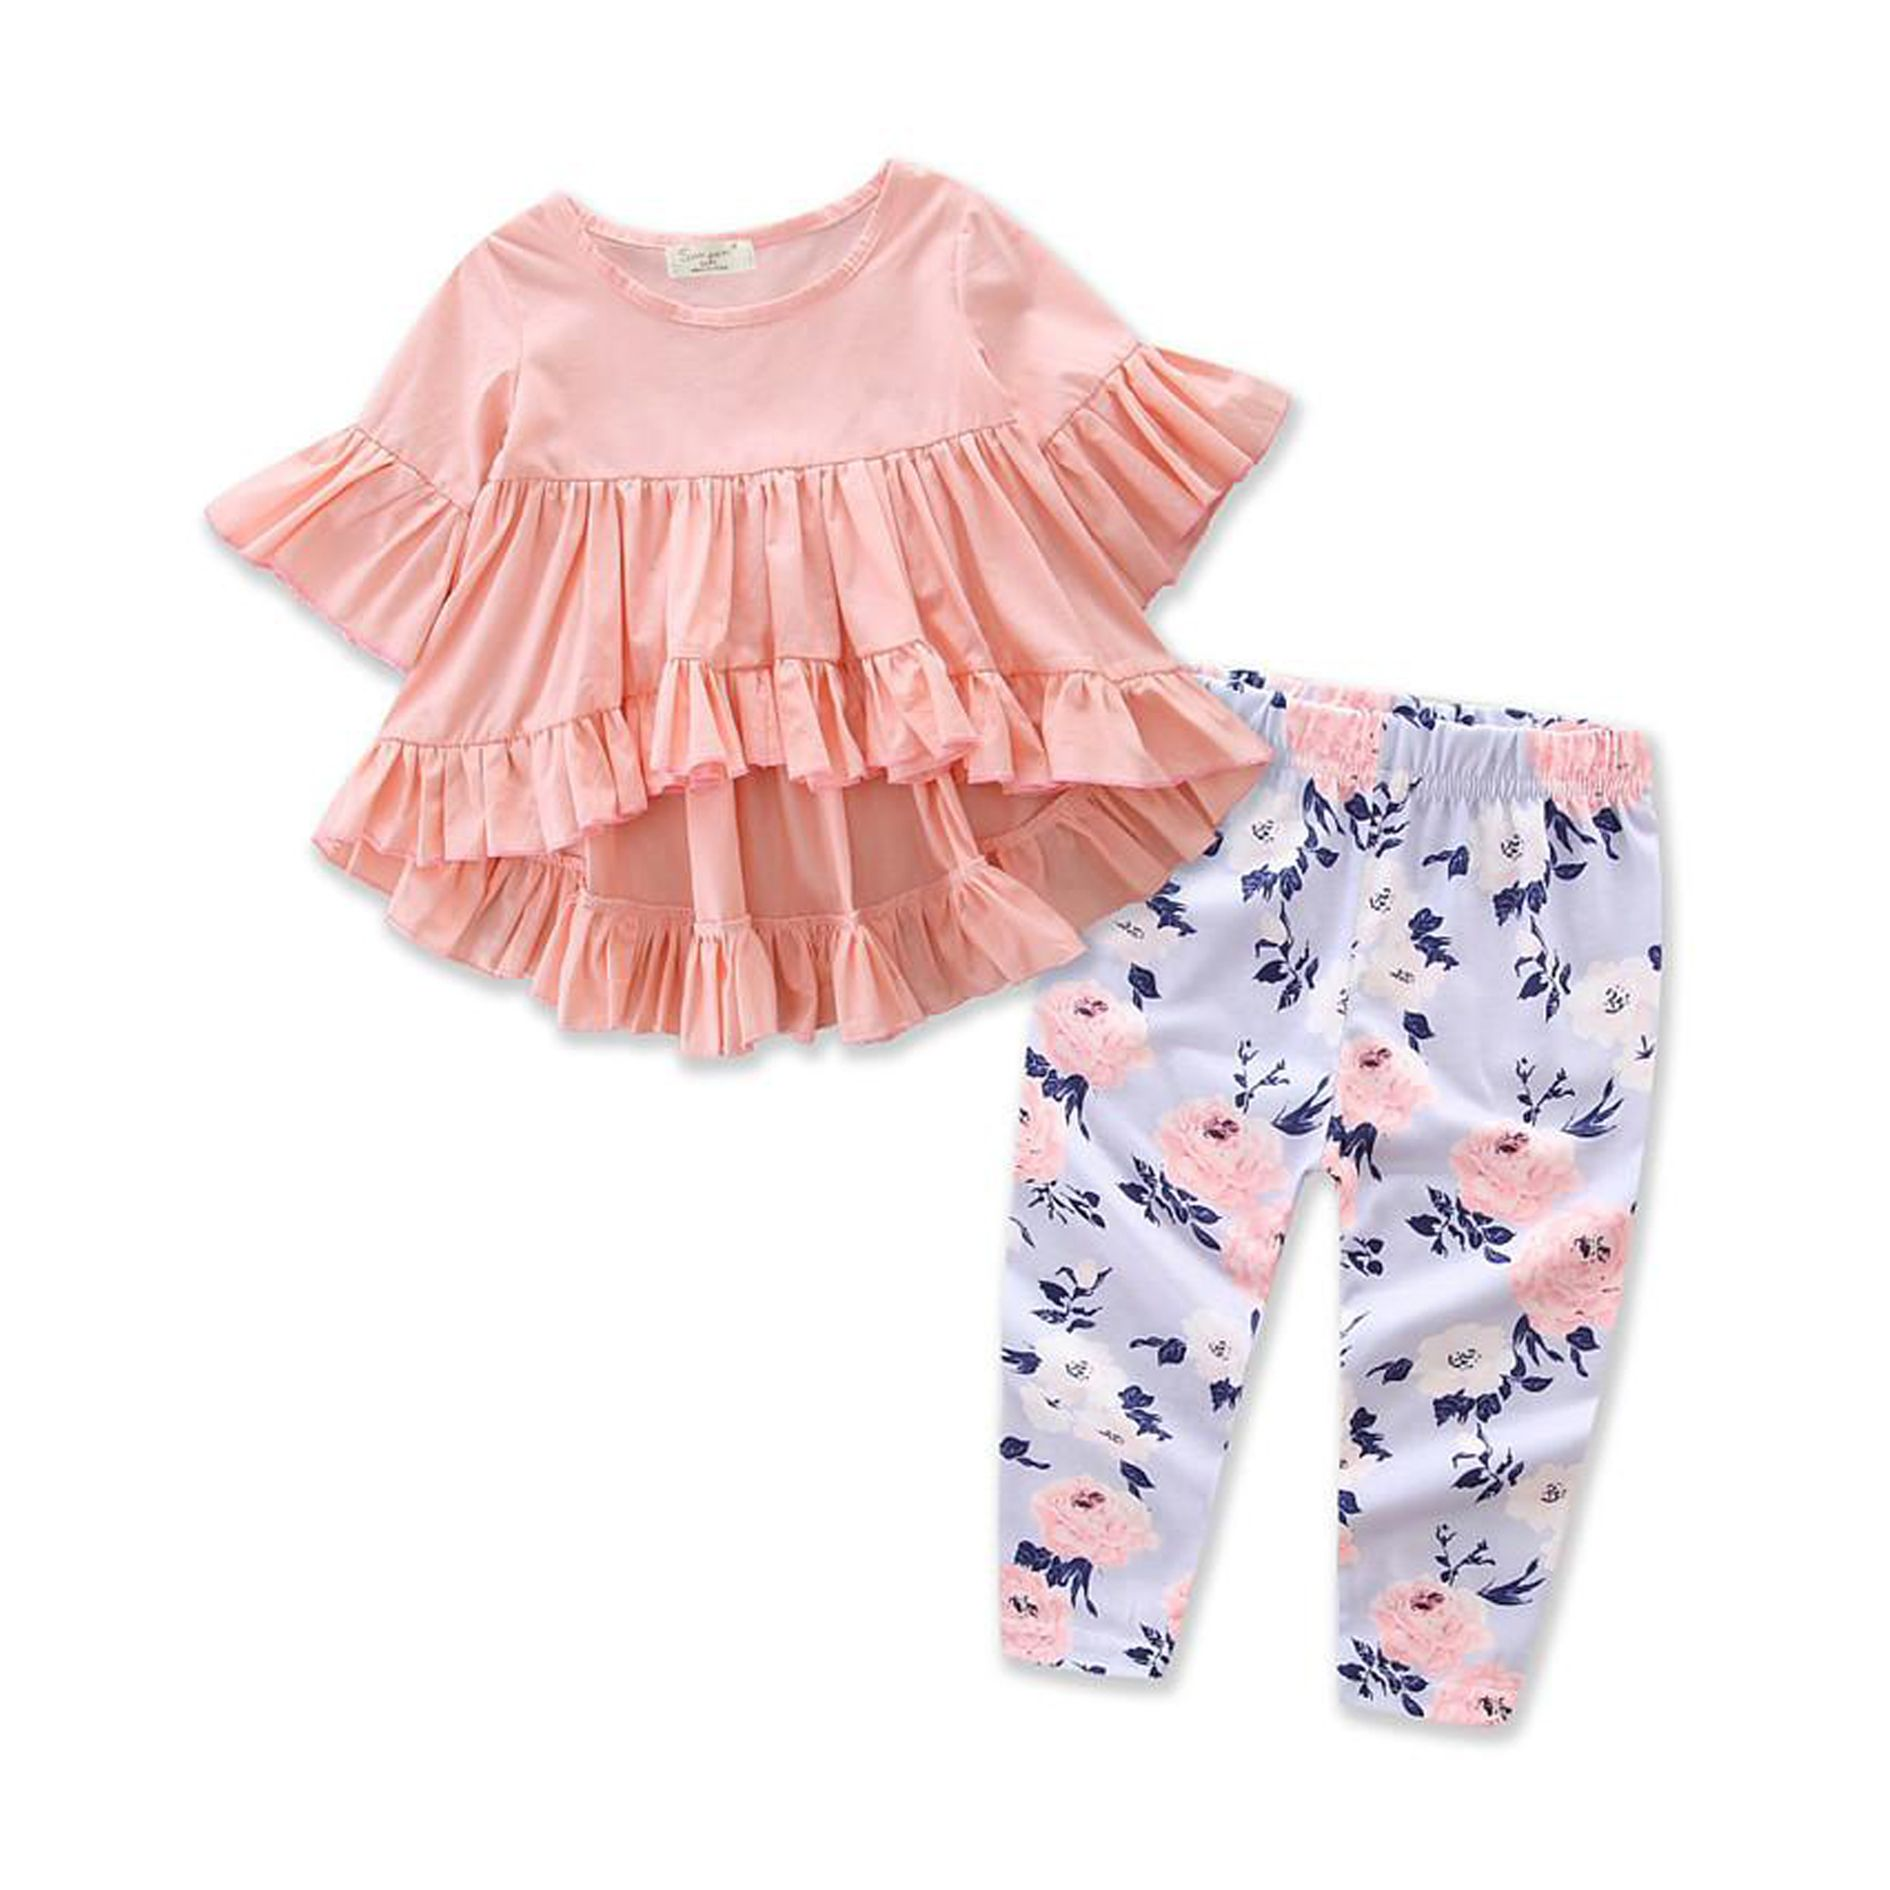 Toddler Girl Clothes Ruffles Irregular Mini Dress Tops+Long Pant Scarf 3PCS Clothing Set